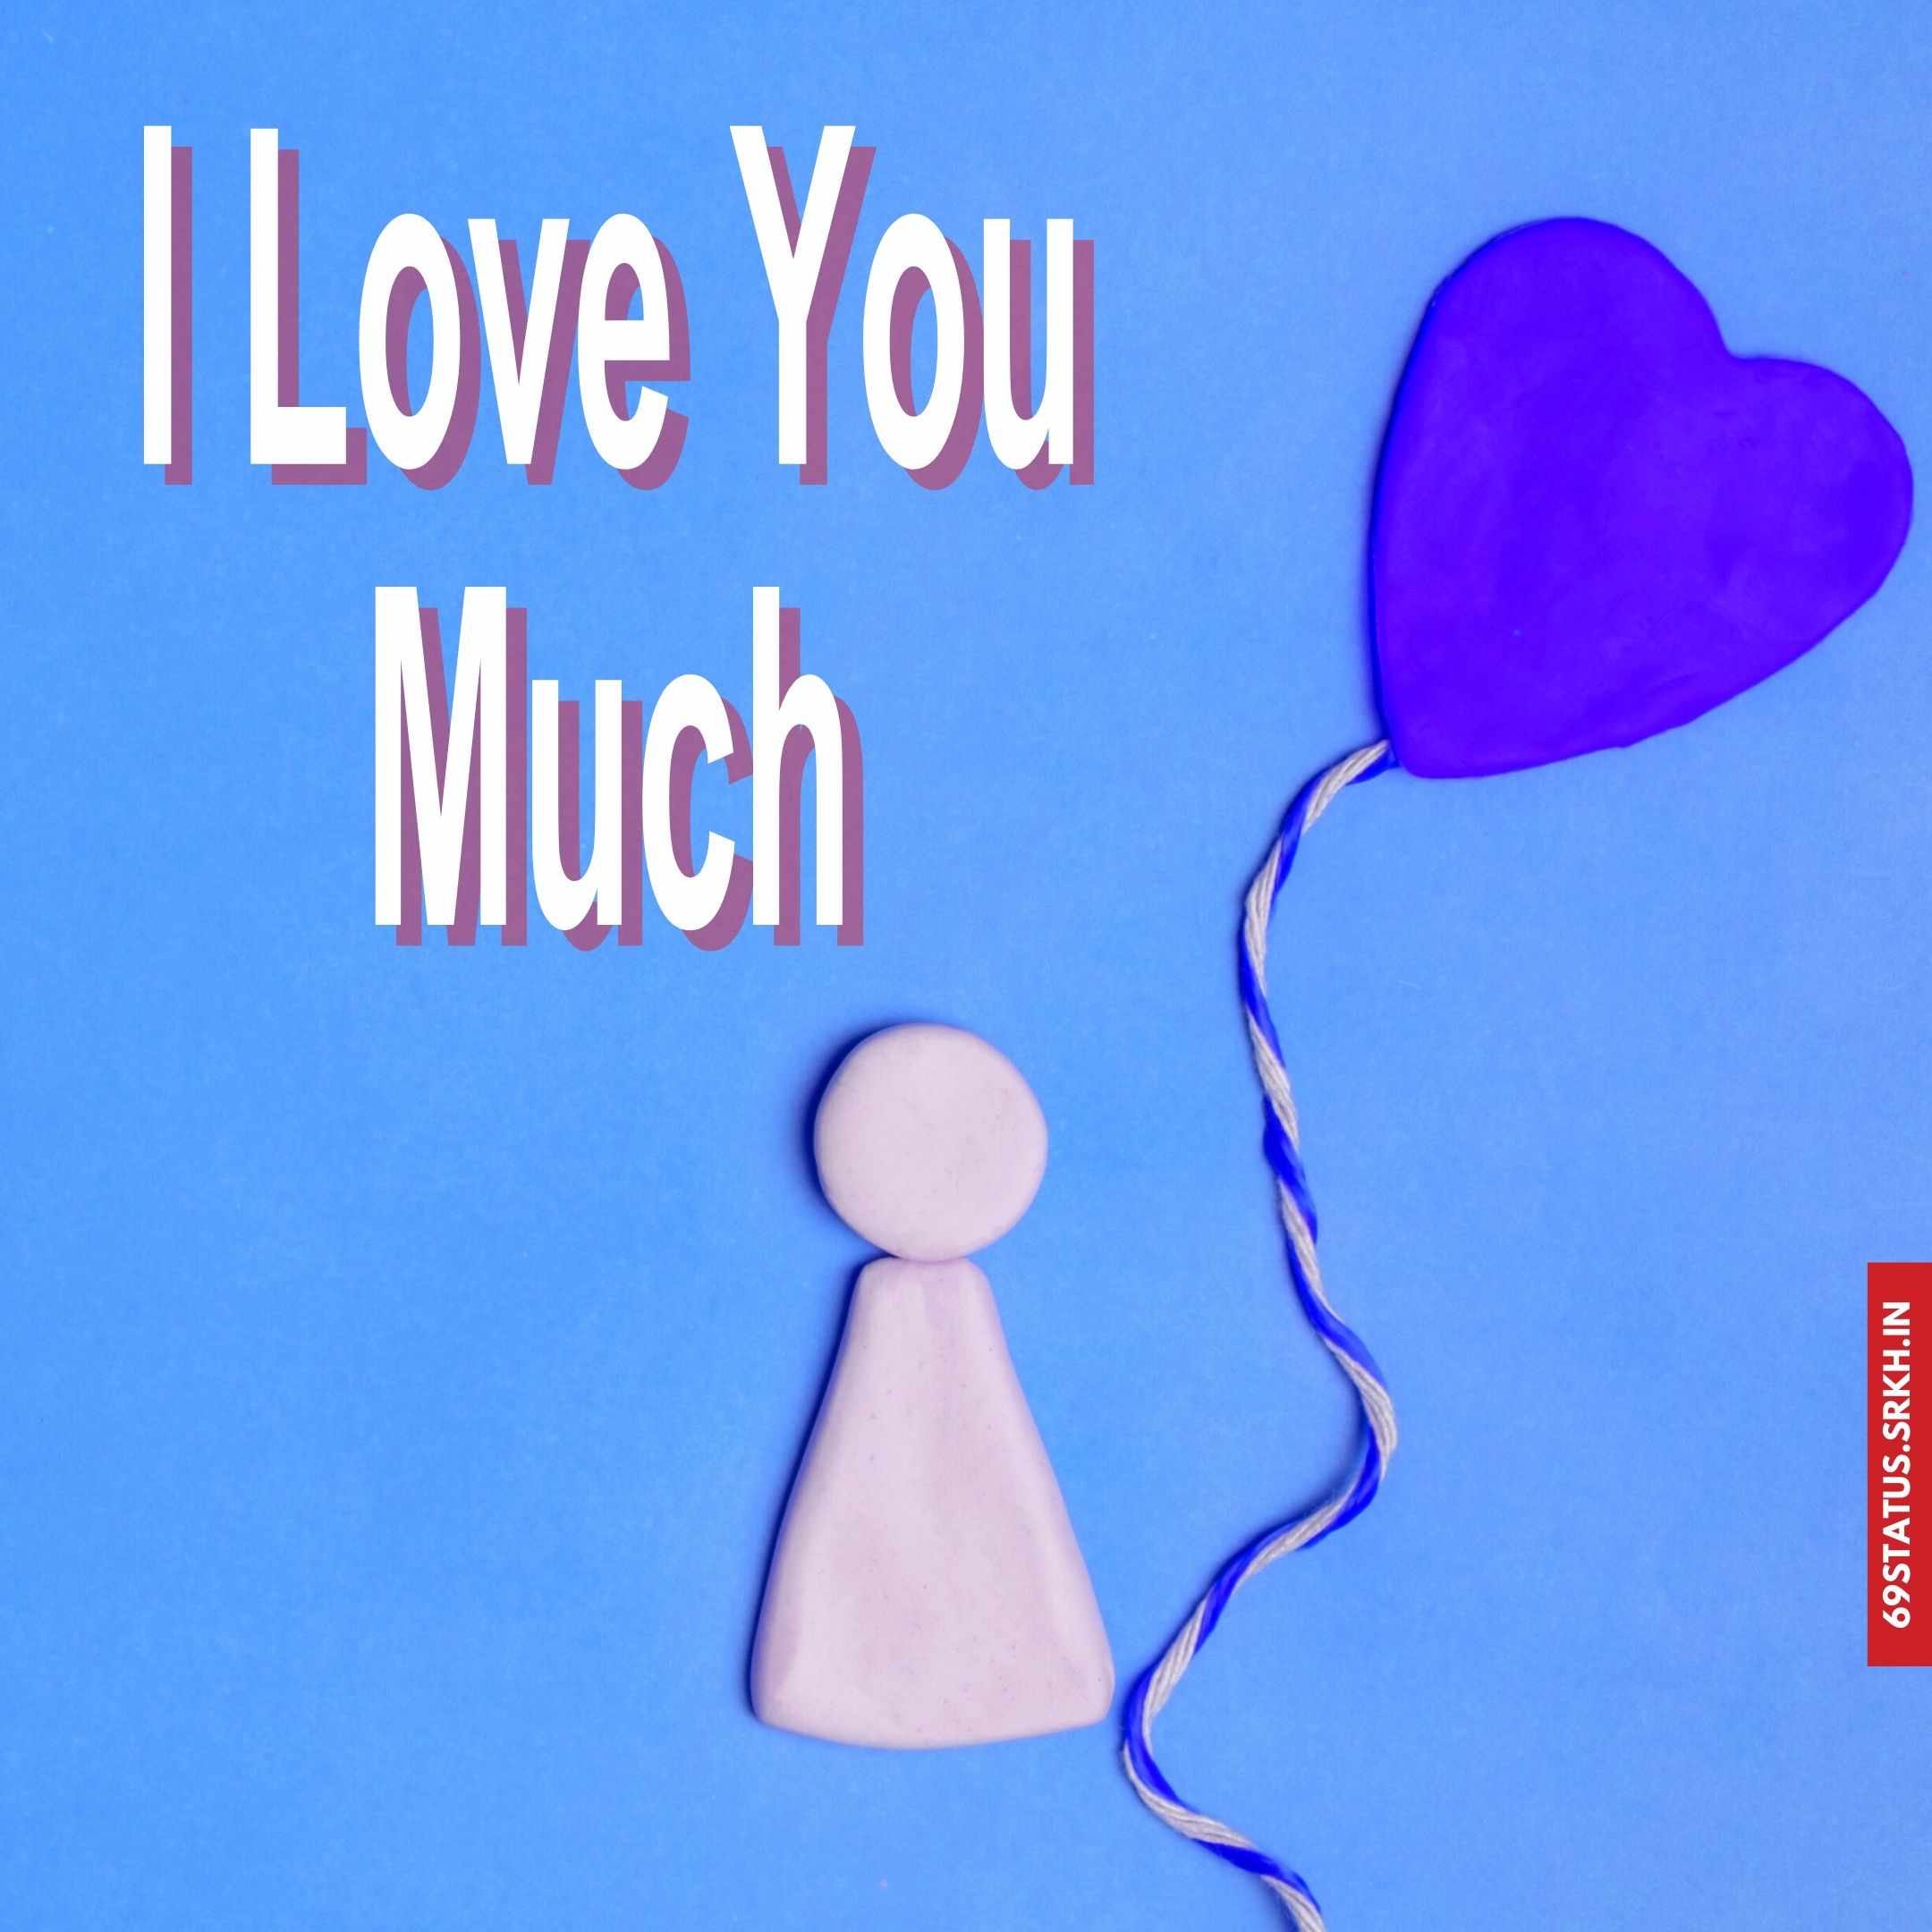 Images of I Love You so much hd full HD free download.